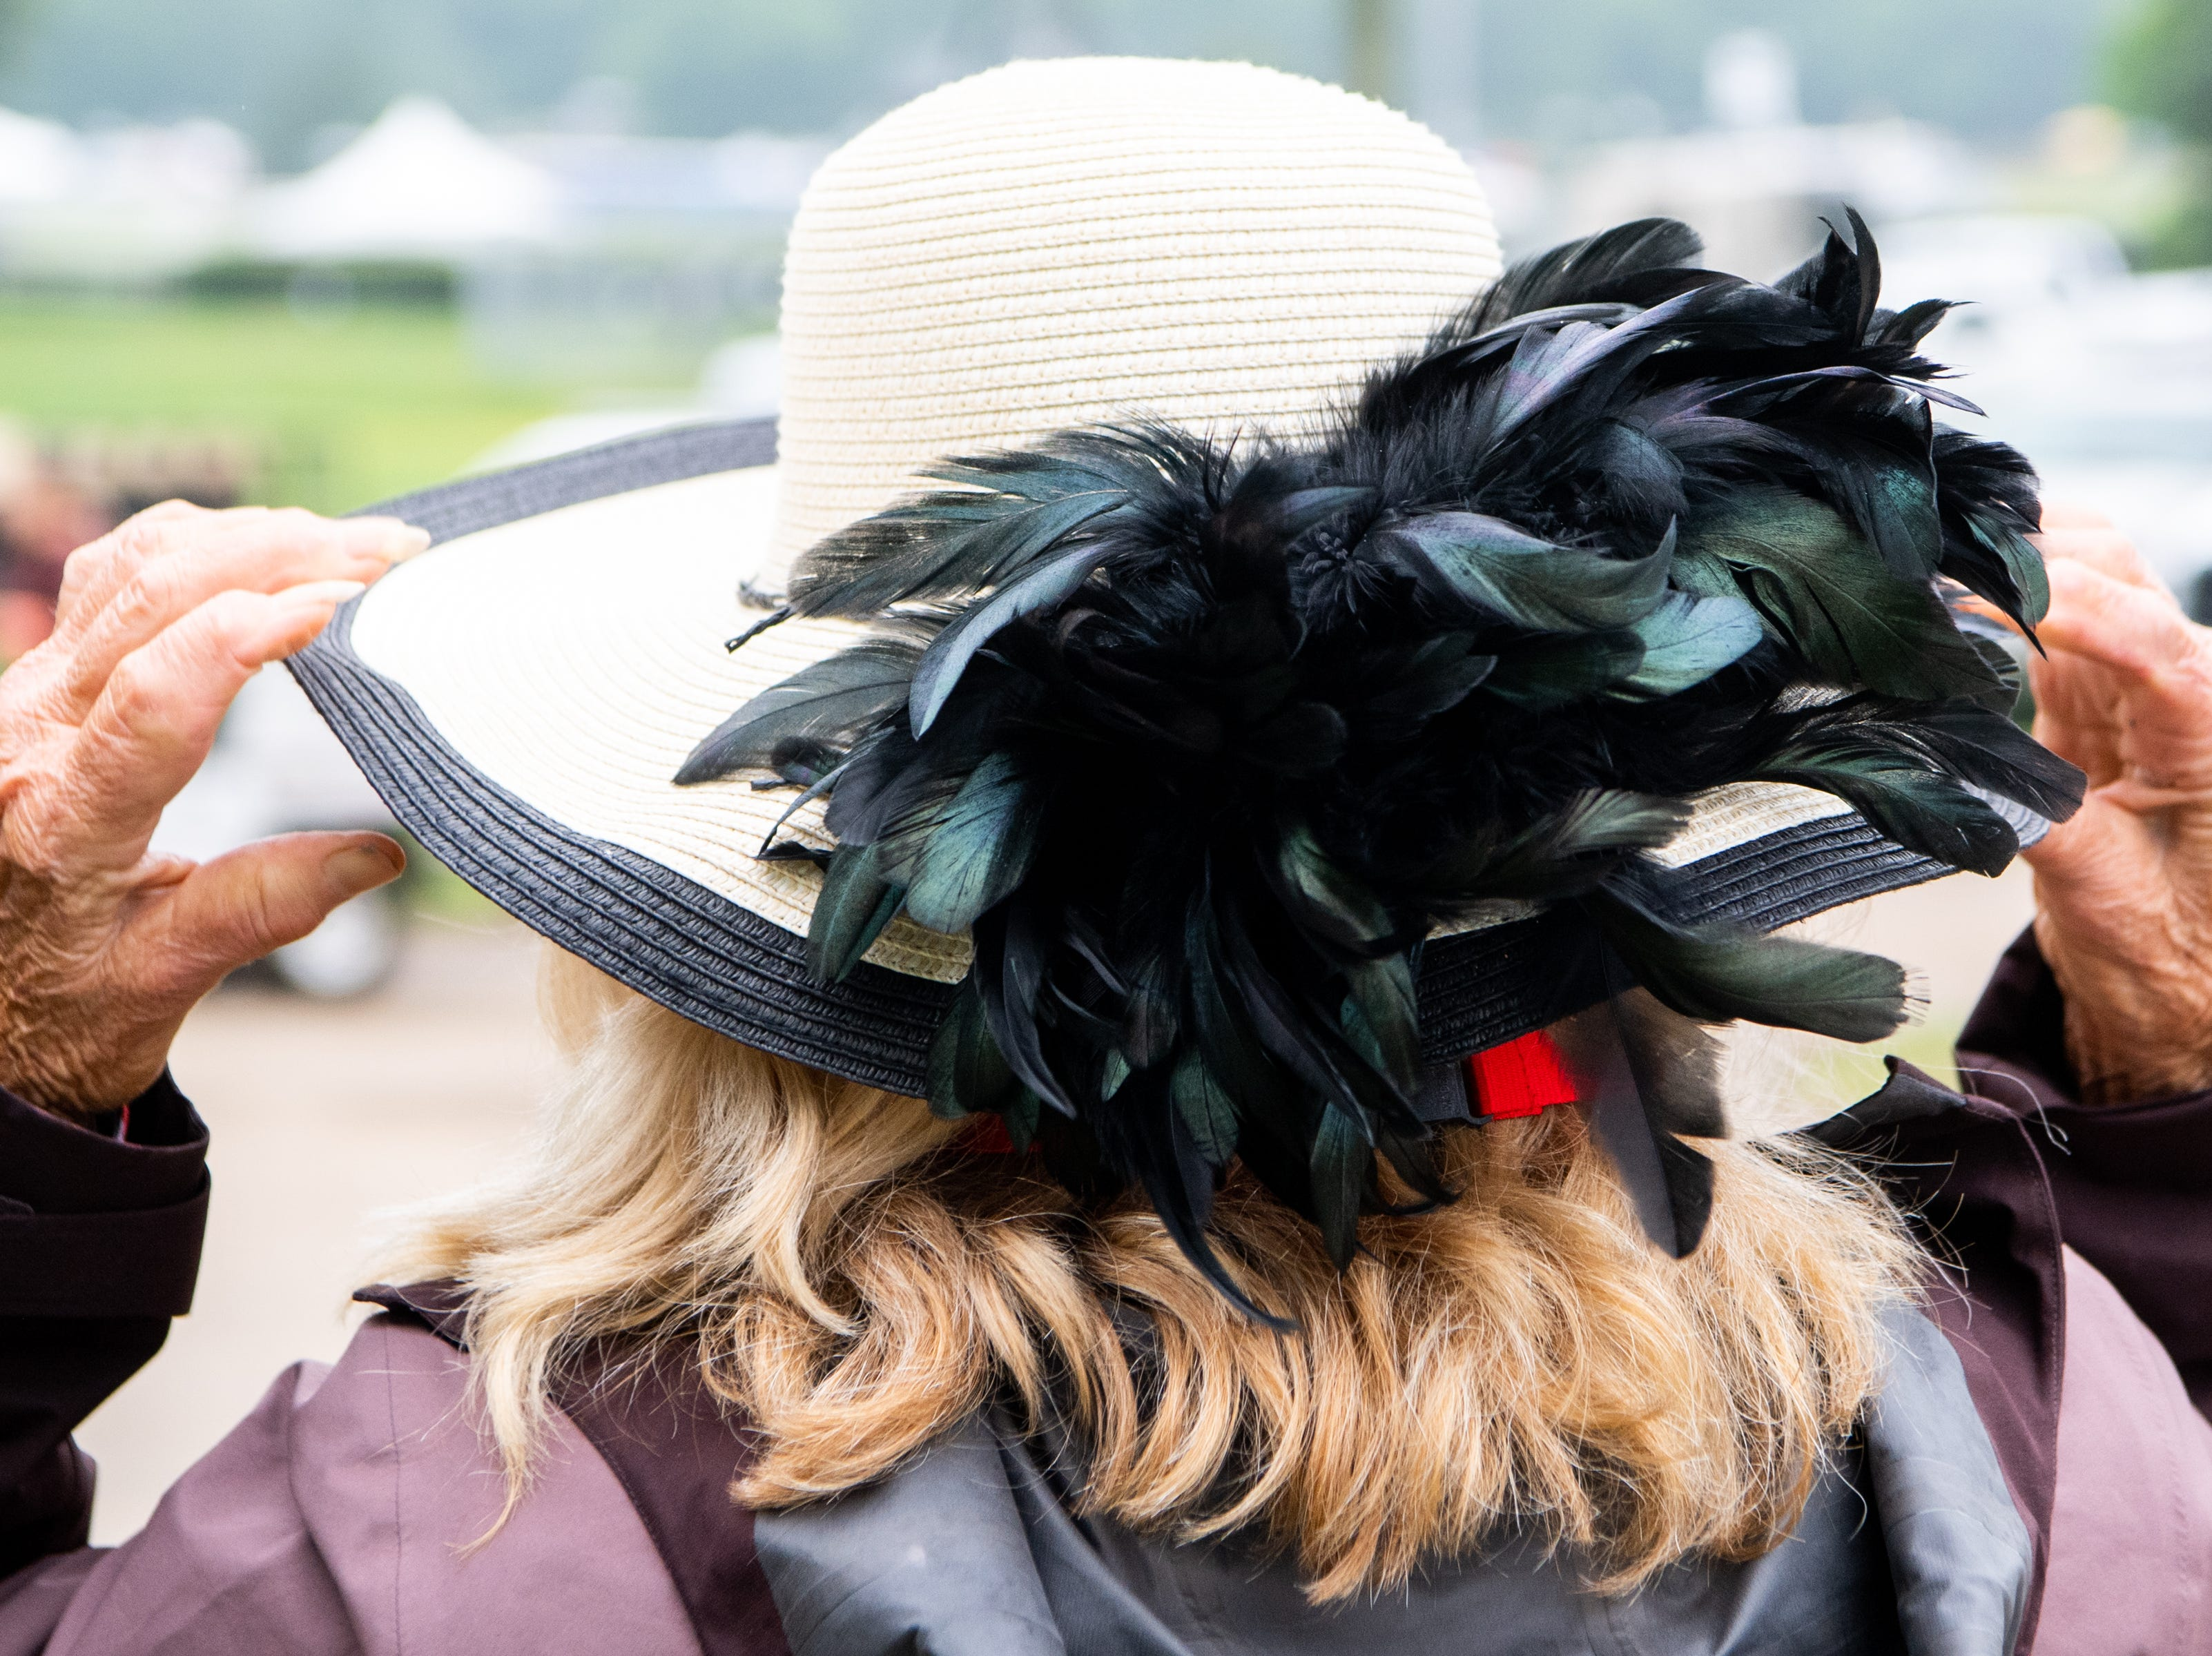 Ann Gayle Hall adjusts her hat during the Iroquois Steeplechase at Percy Warner Park Saturday, May 11, 2019, in Nashville, Tenn.